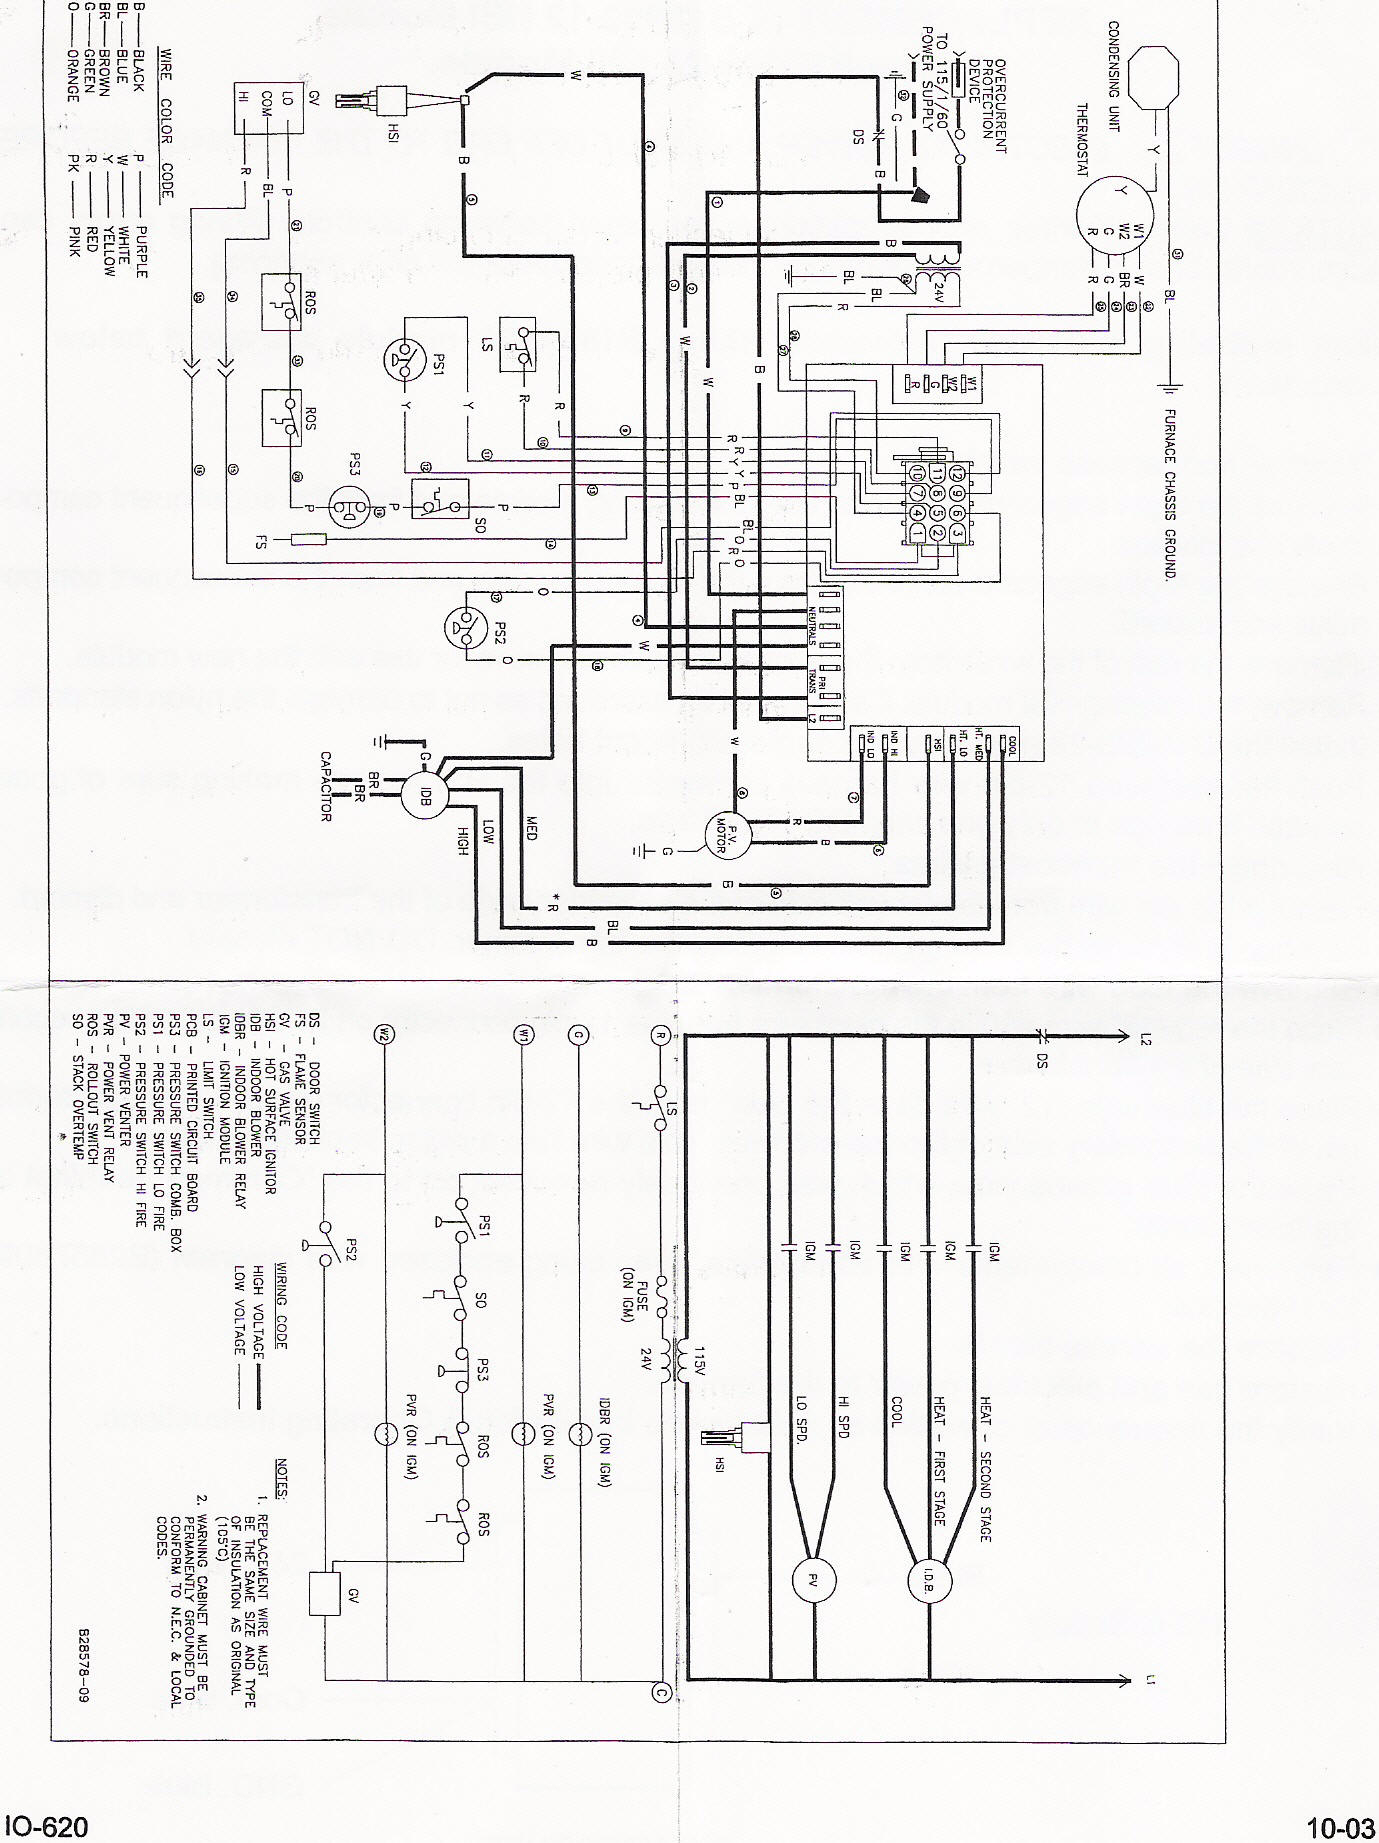 Hvac Control Board Wiring Diagram